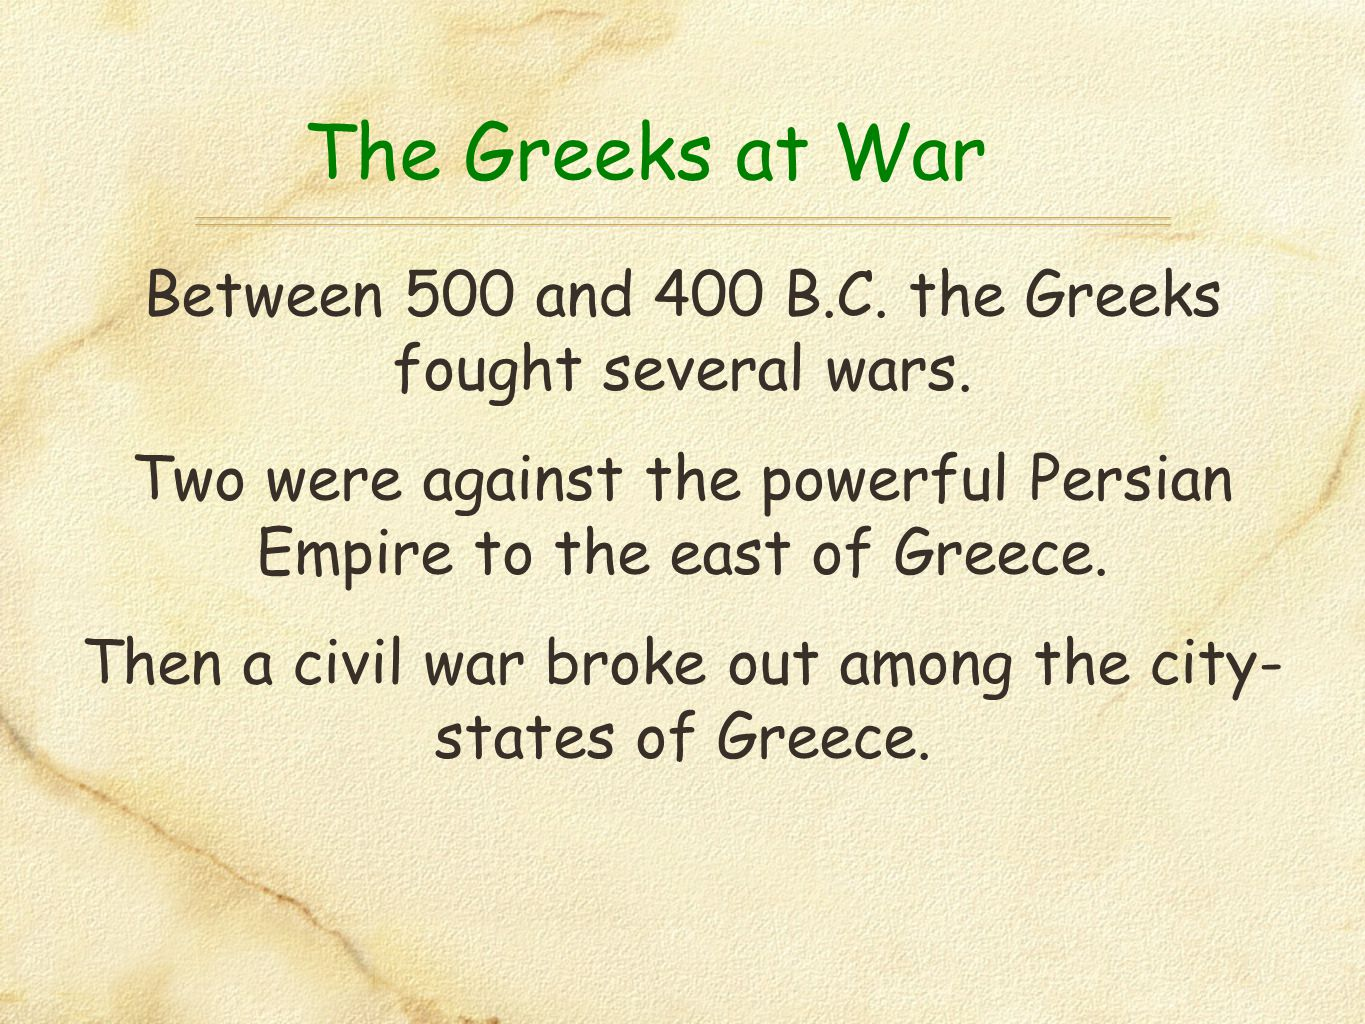 The Greeks at War Between 500 and 400 B.C. the Greeks fought several wars. Two were against the powerful Persian Empire to the east of Greece.